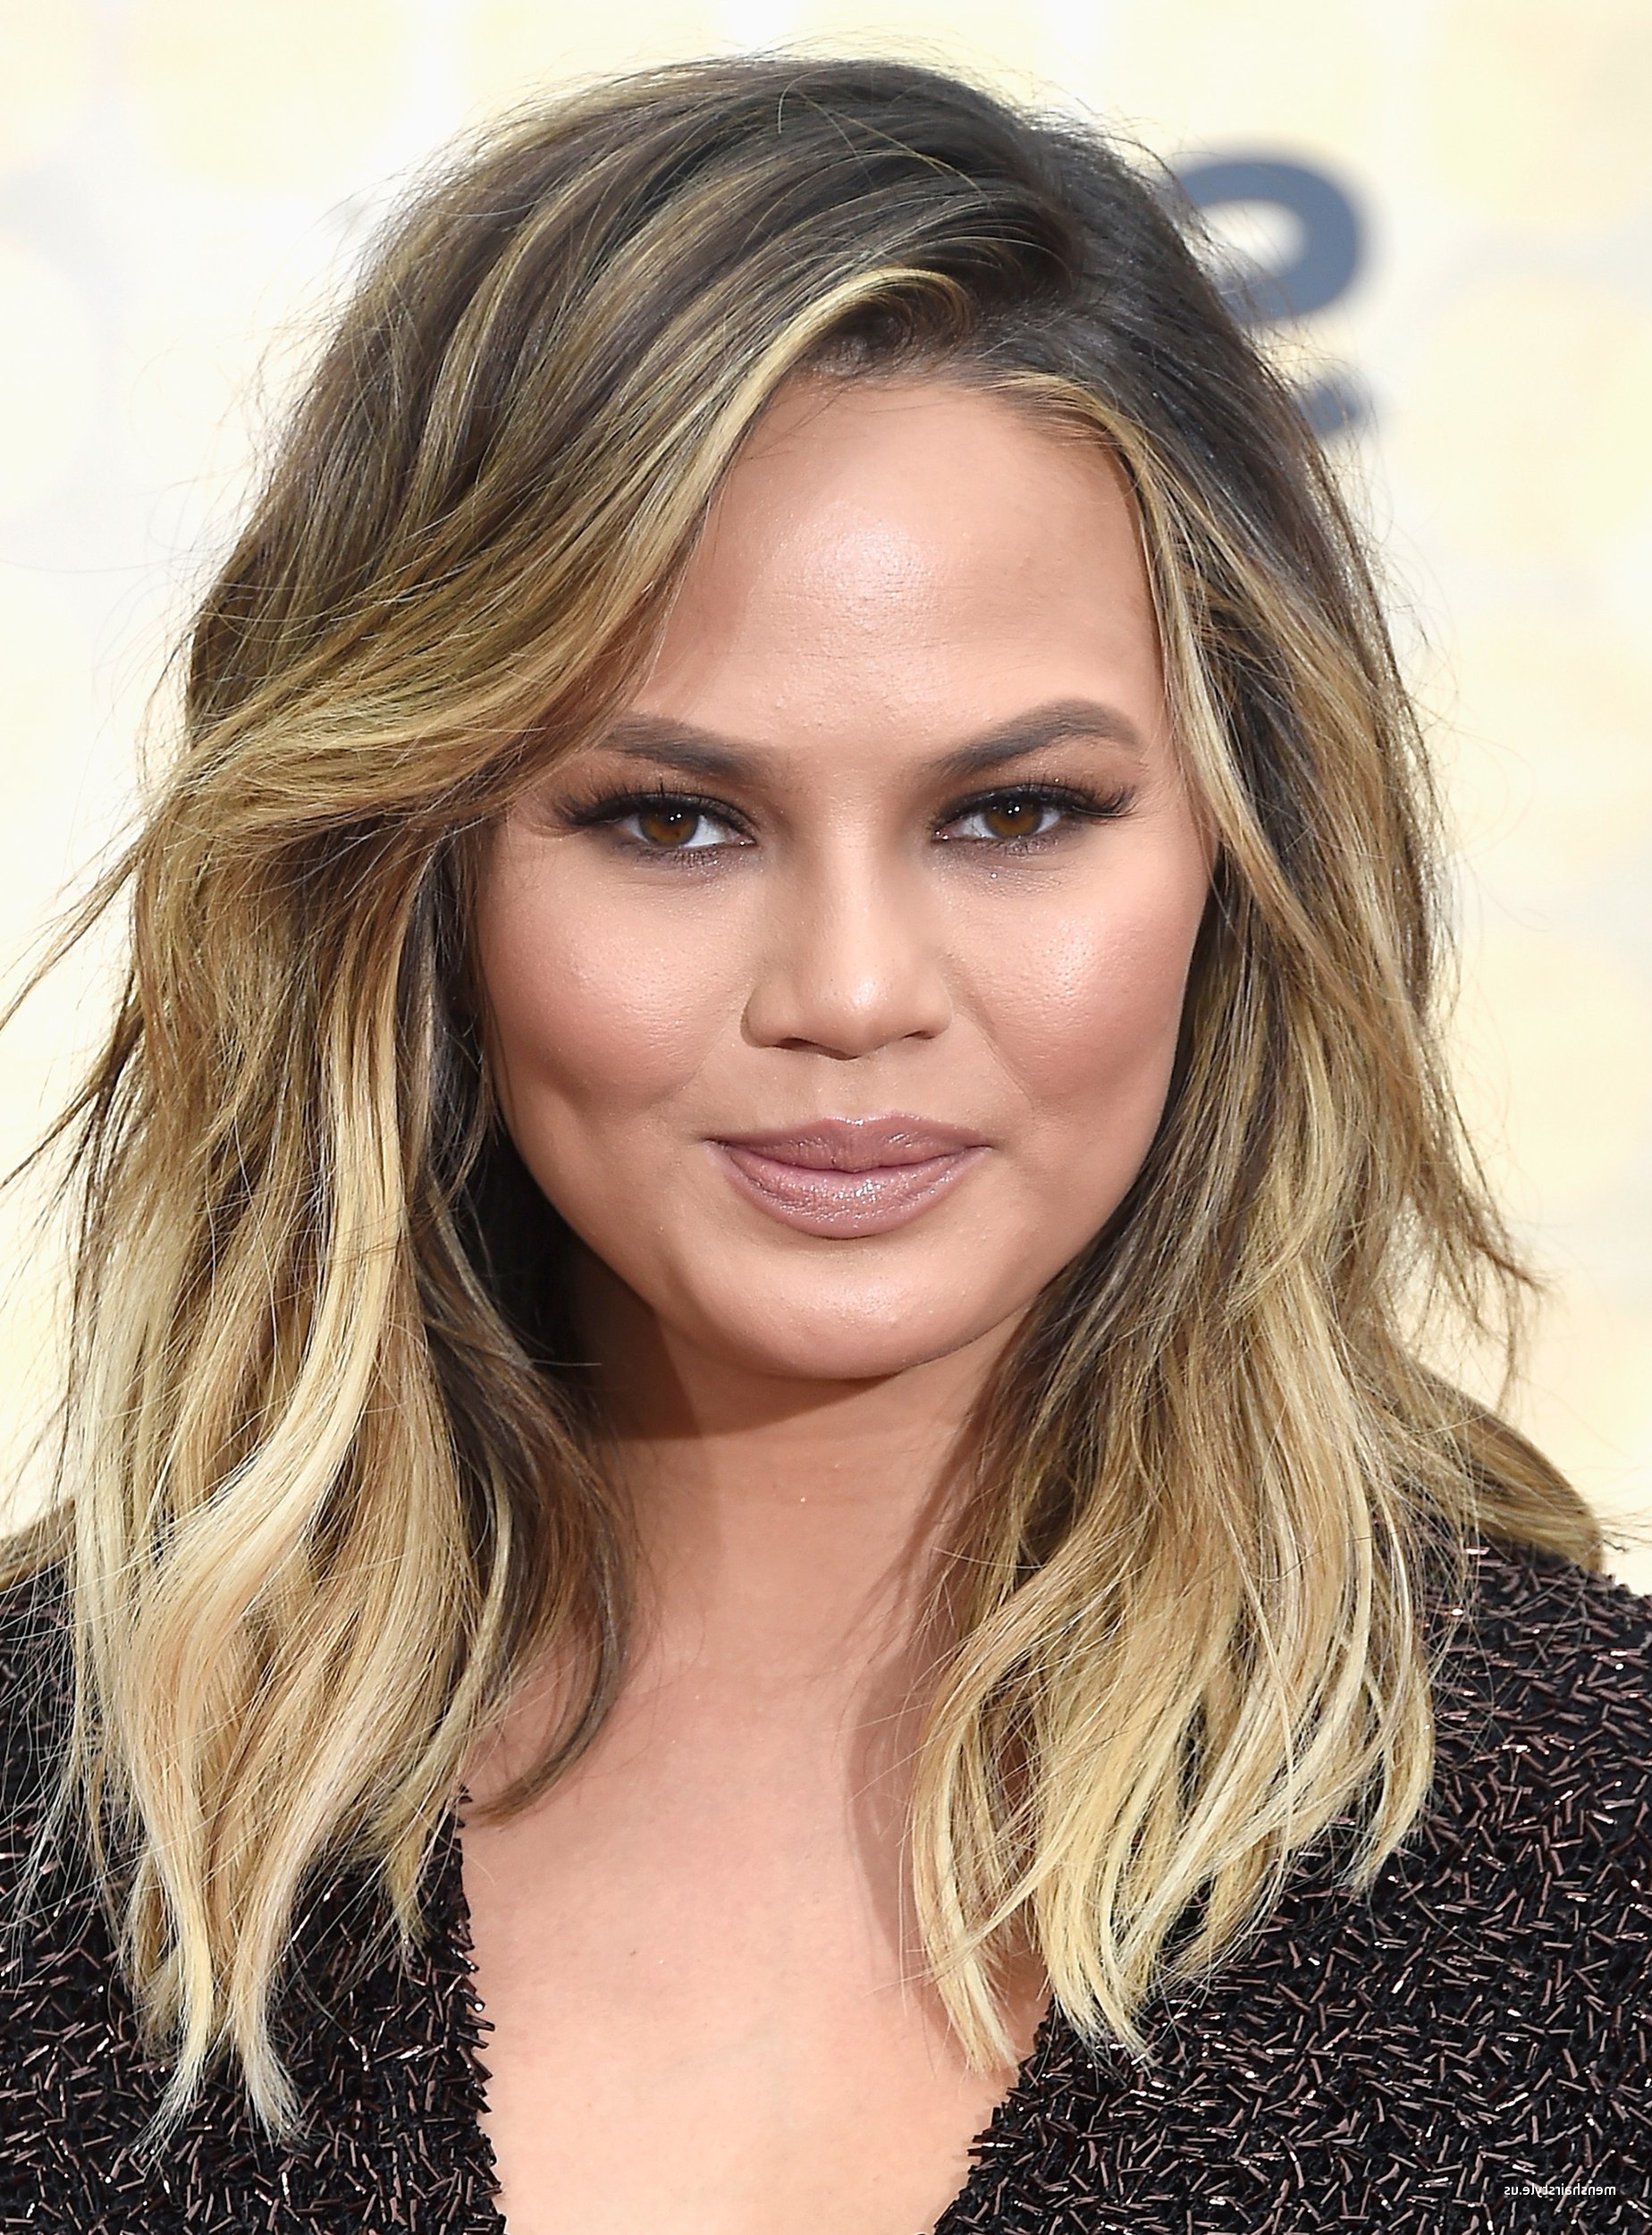 Short Hairstyles For Fat Faces And Double Chins Male - The Look for Less